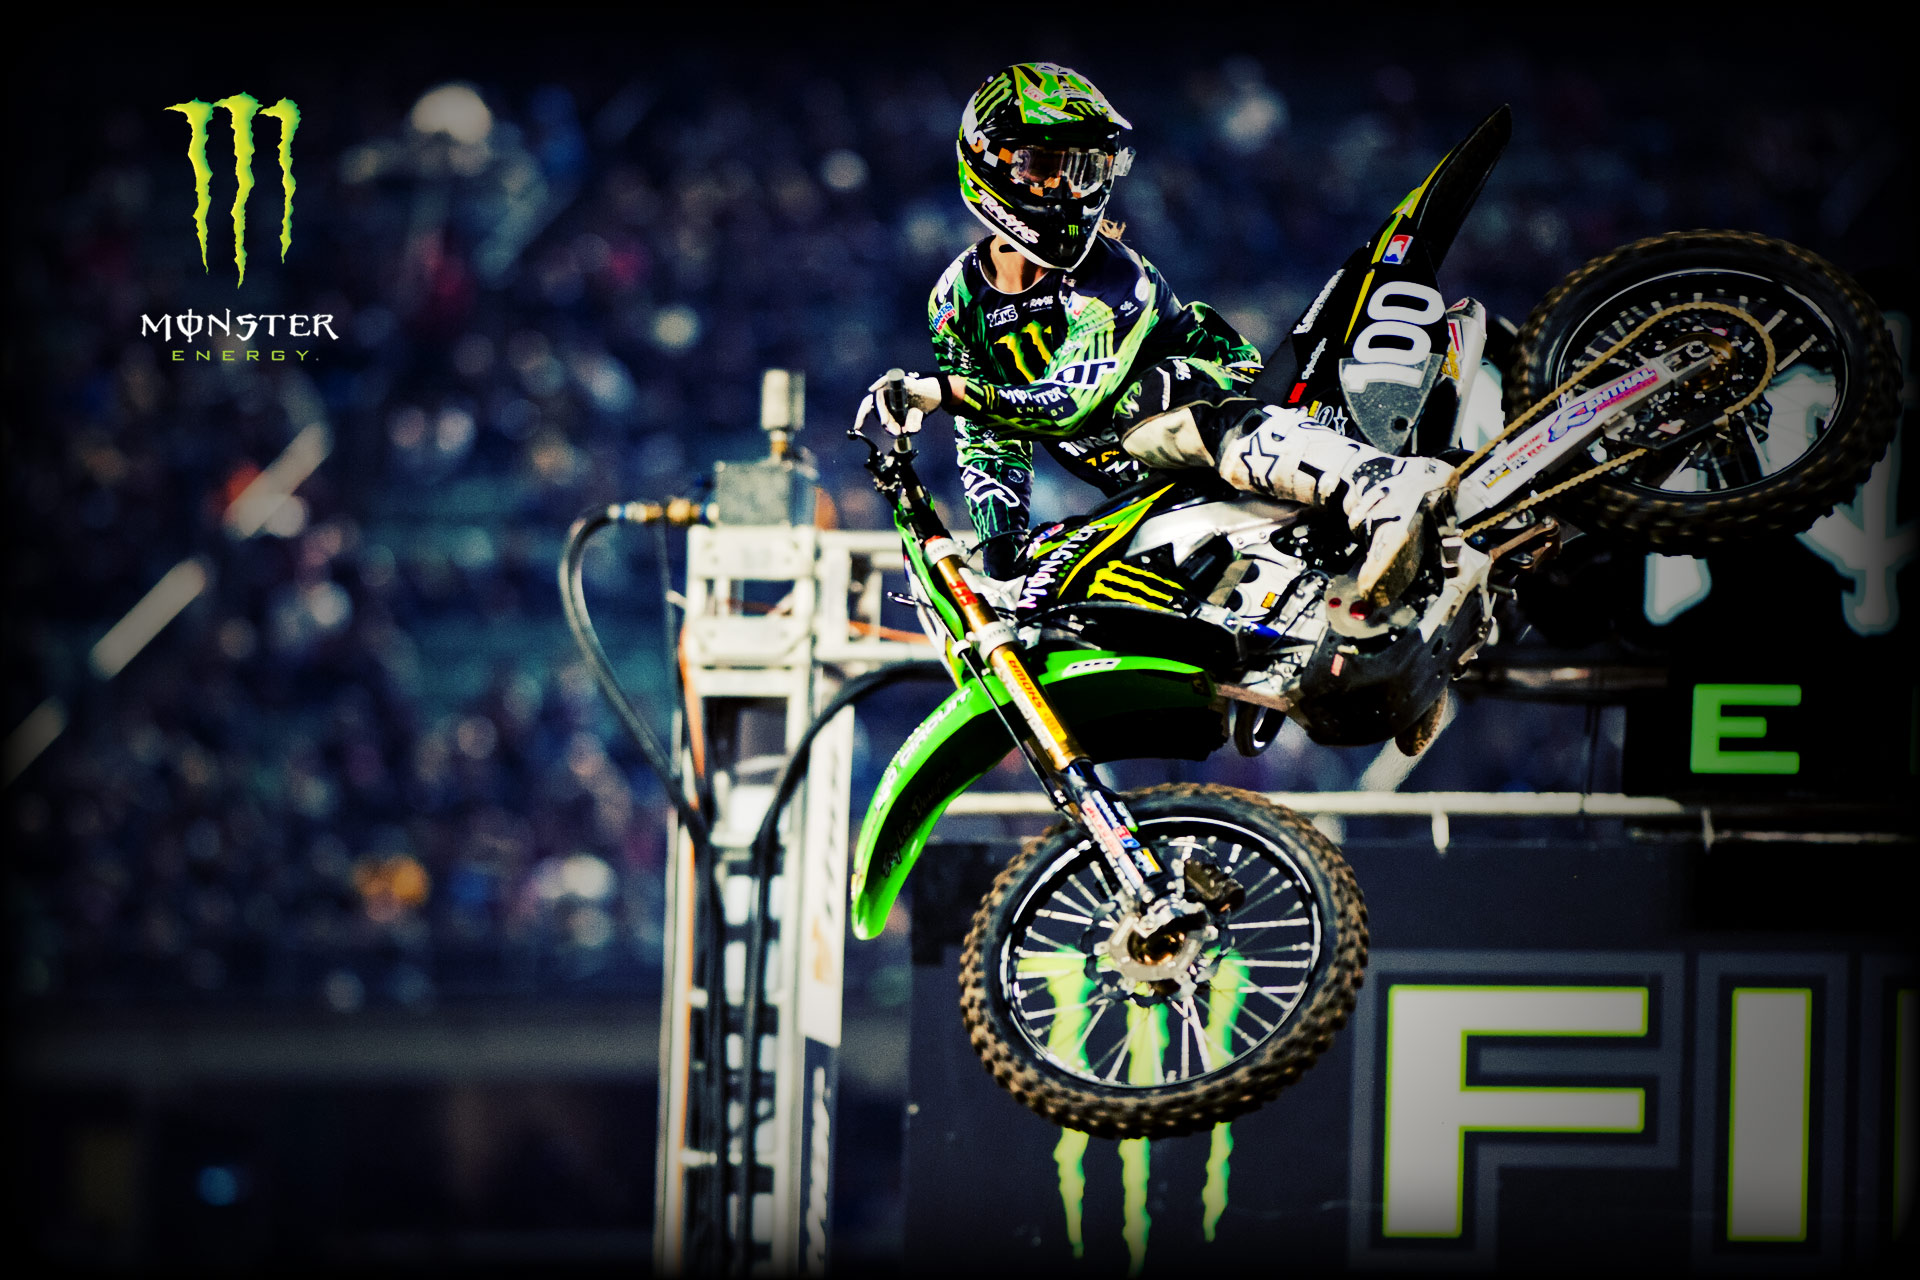 Download Monster Energy Wallpapers 1920x1280